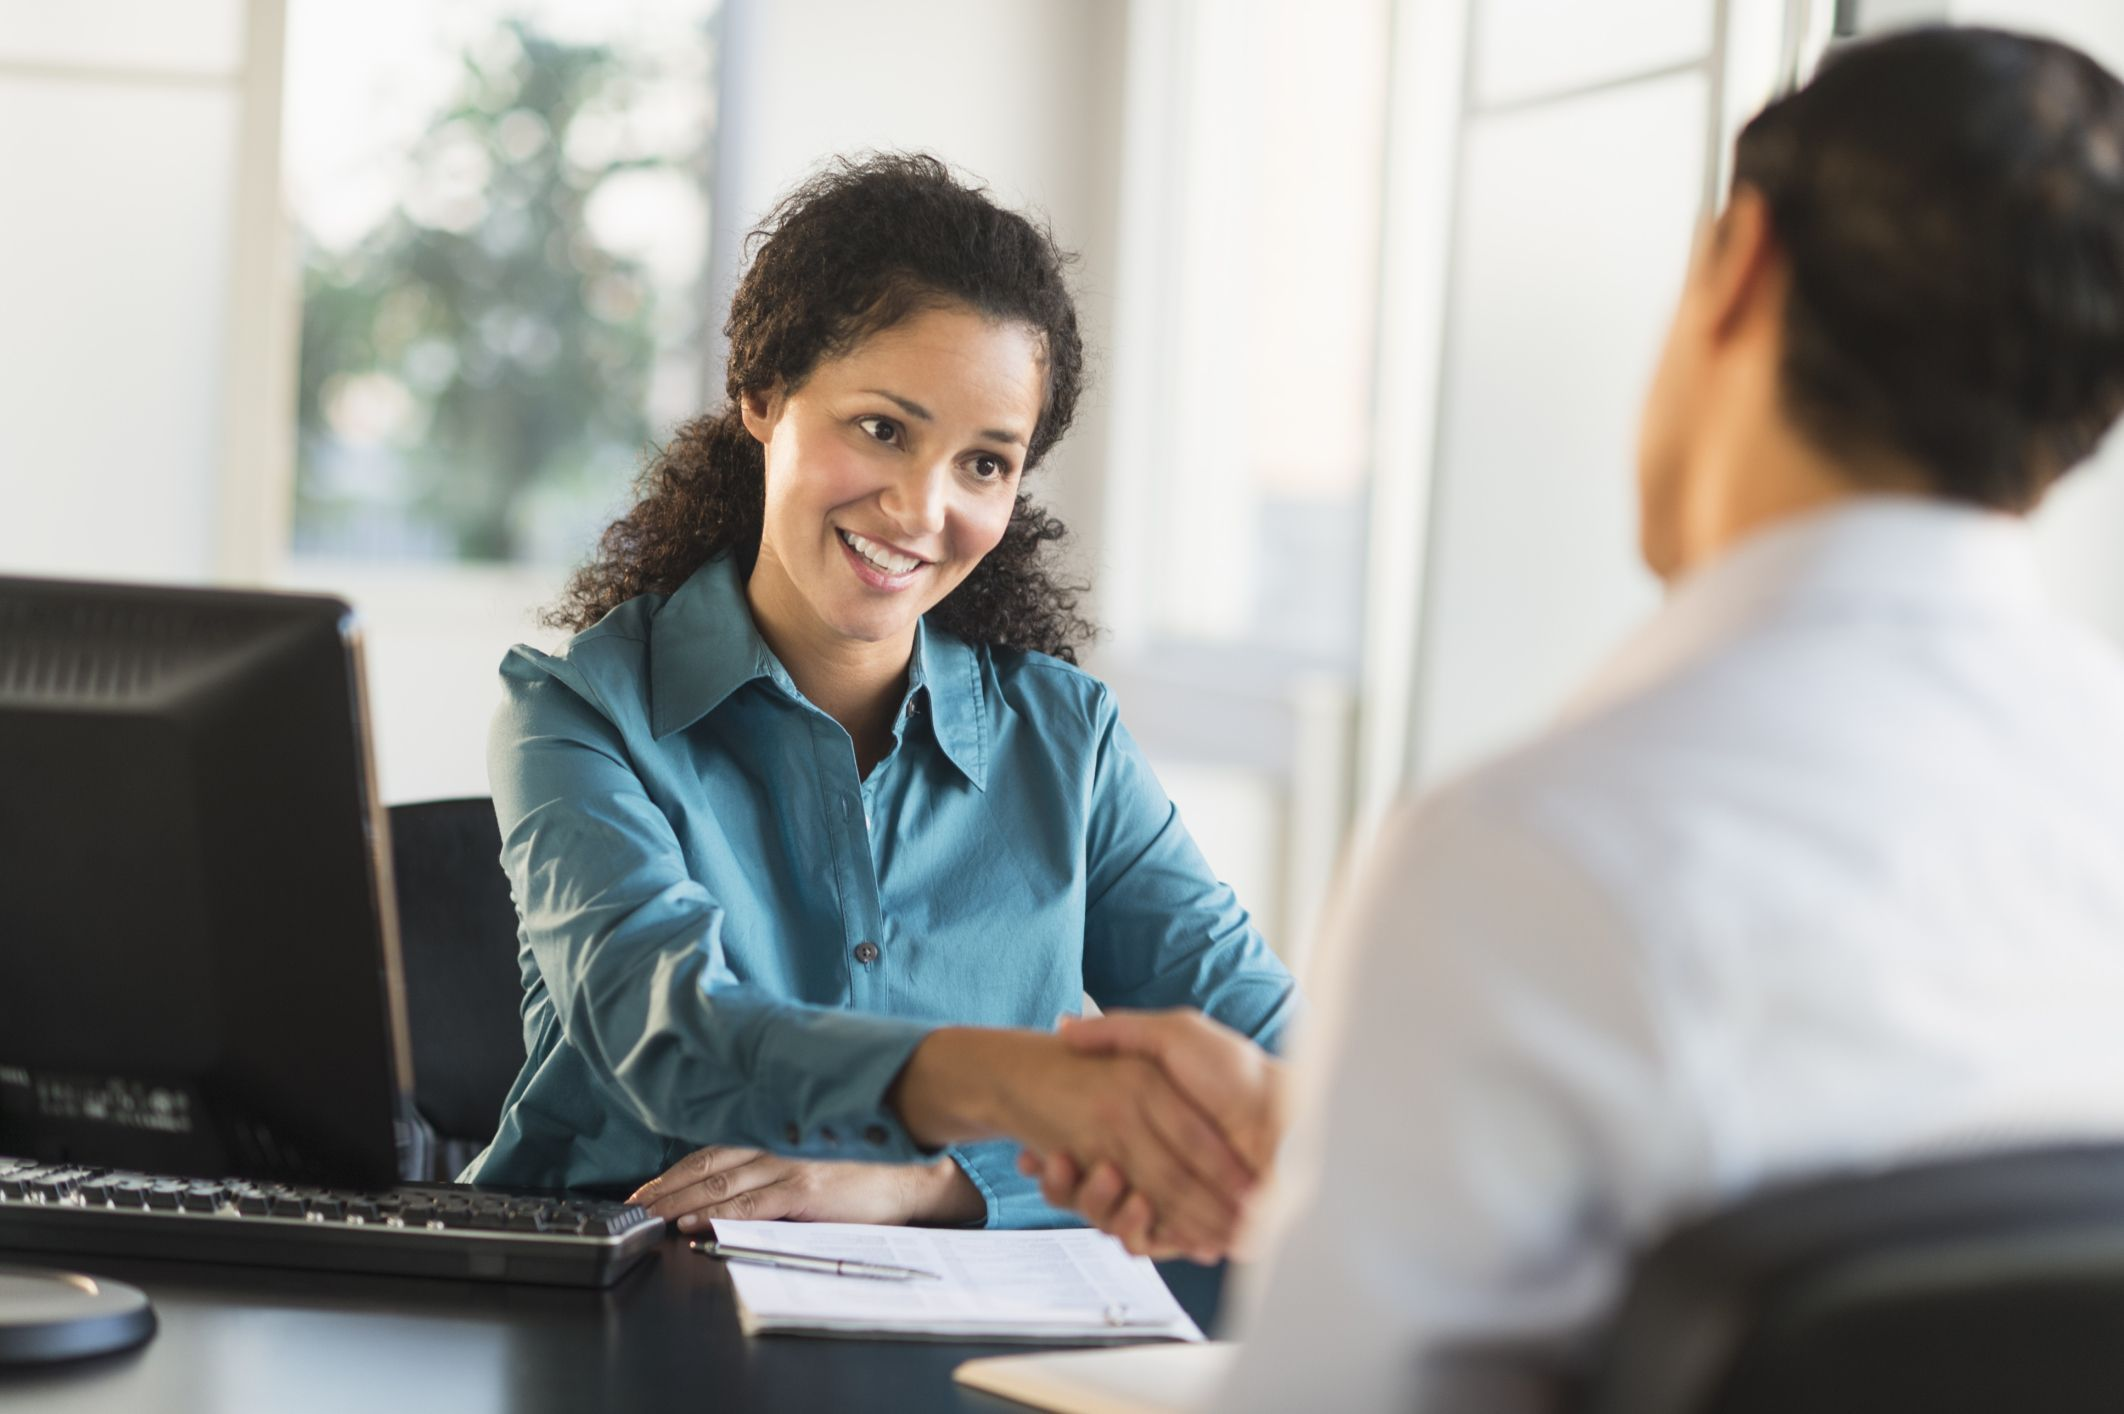 interview  how to attend an interview successfully